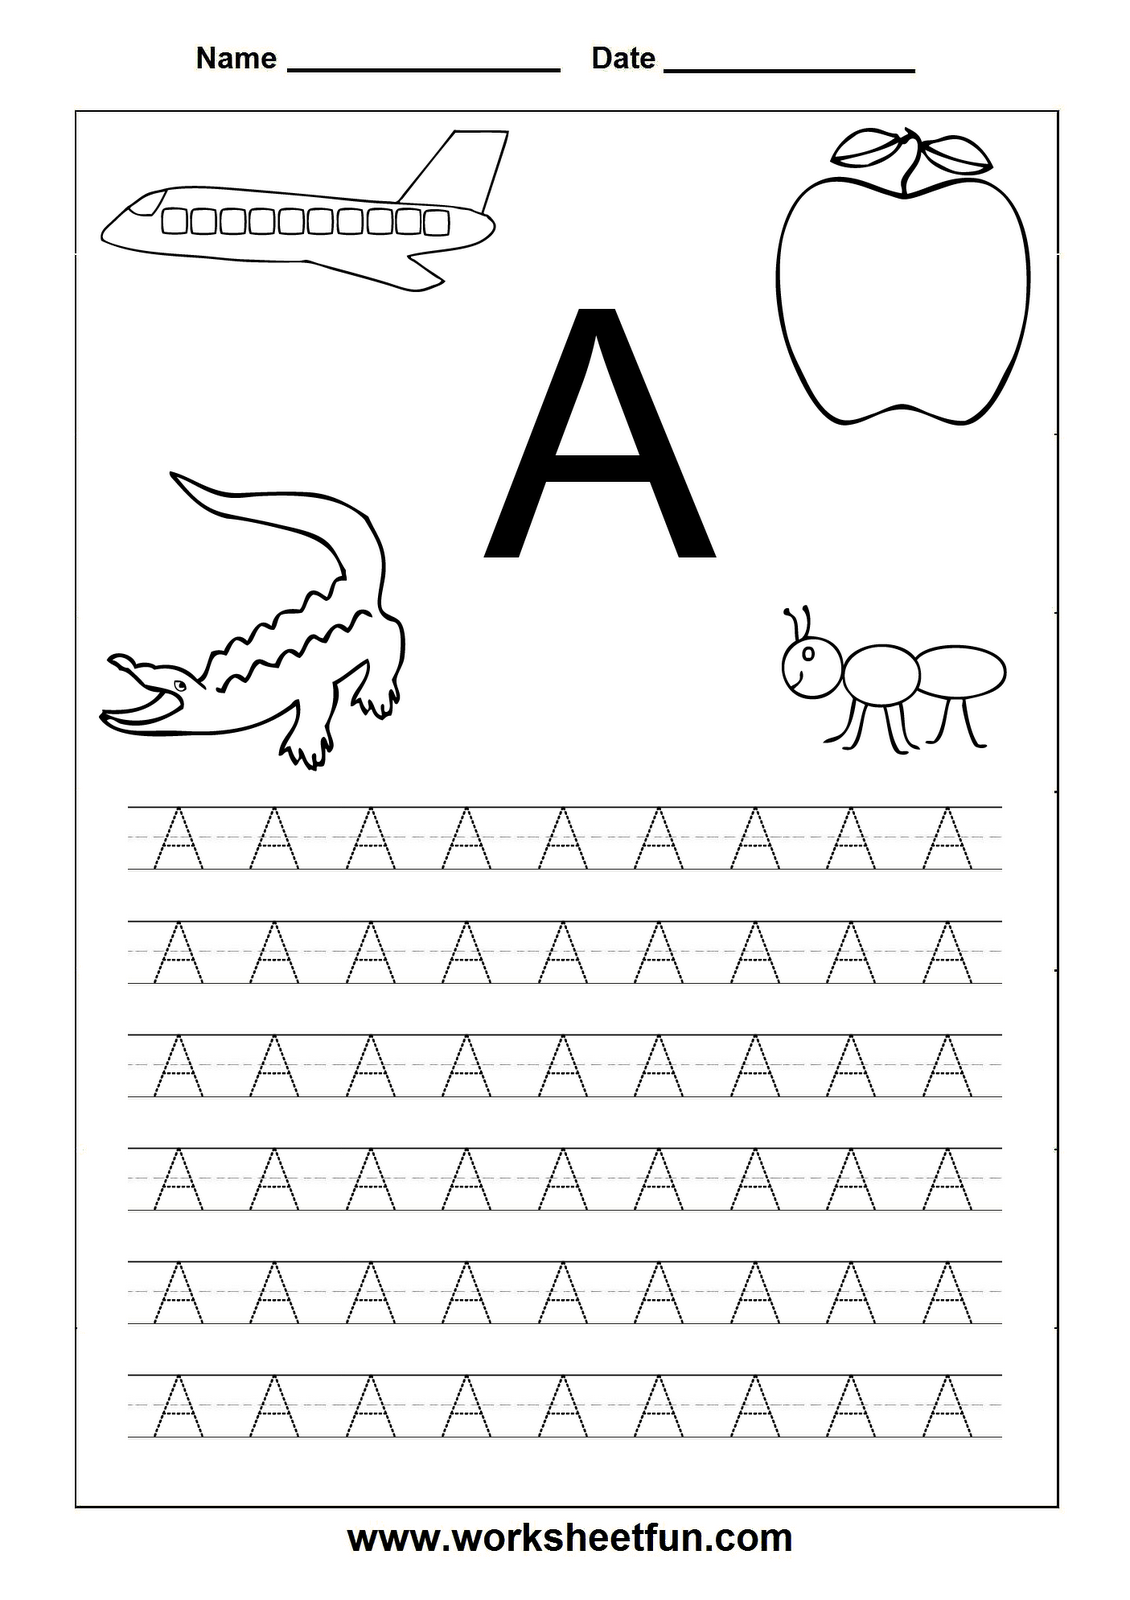 AZ Capital Letter Tracing Worksheets there are PLENTY more – Free Alphabet Tracing Worksheets